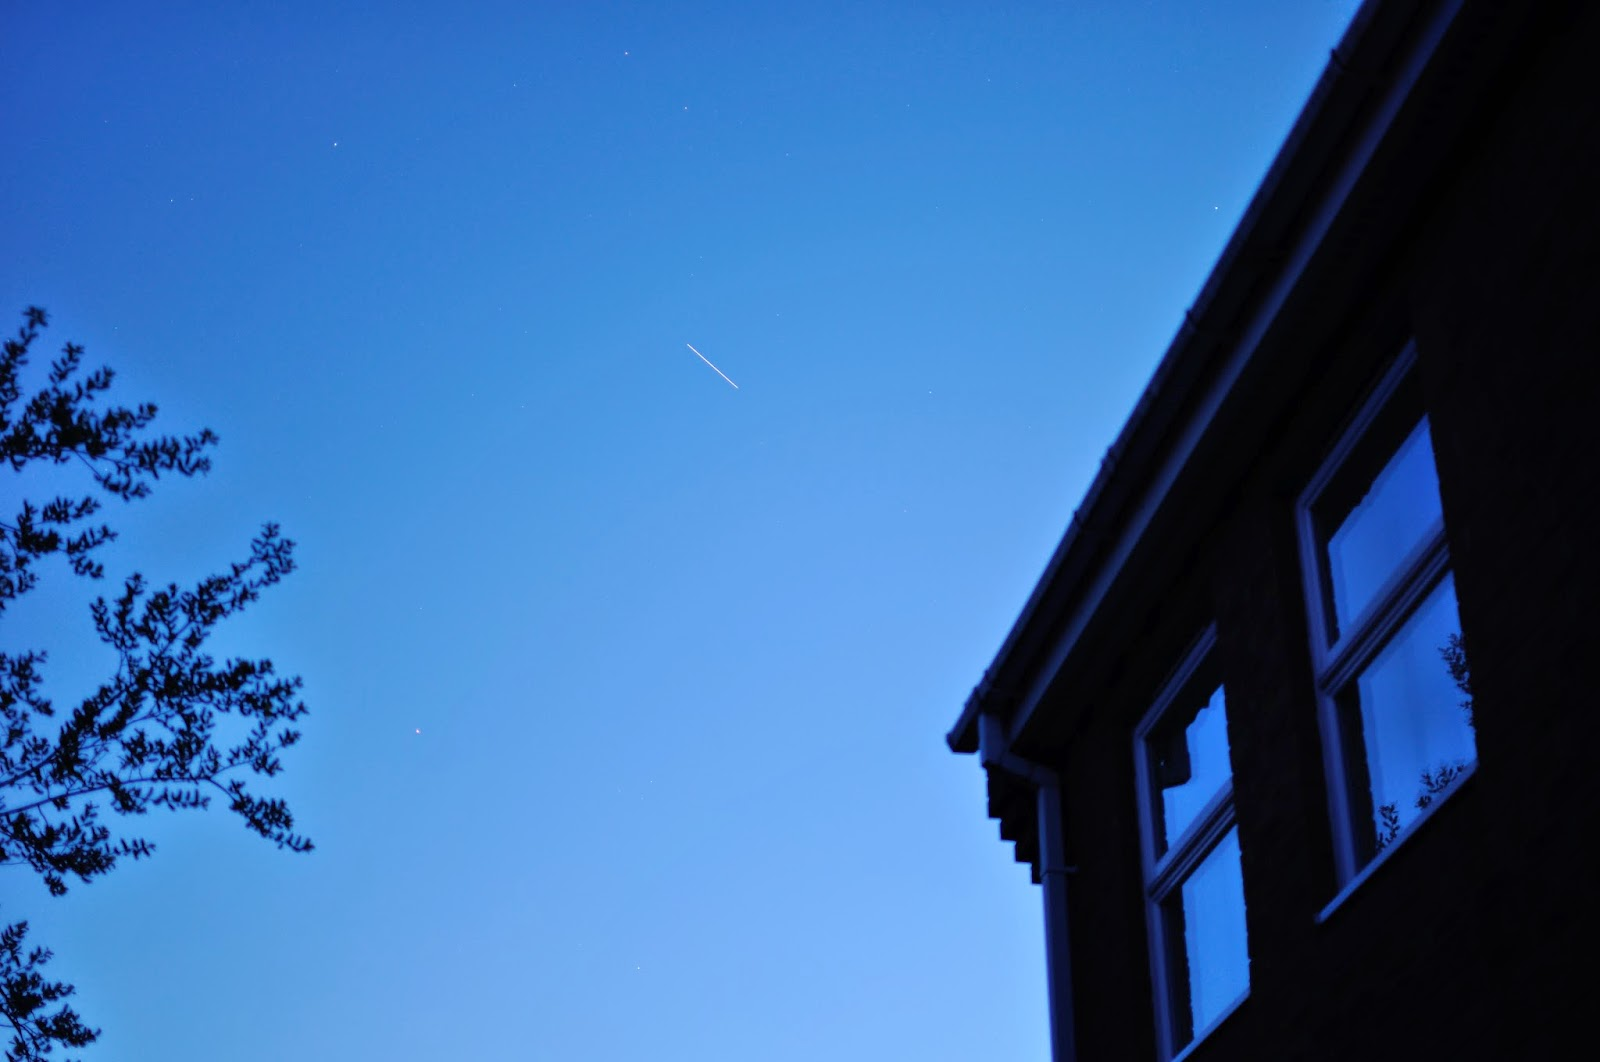 ISS sighting